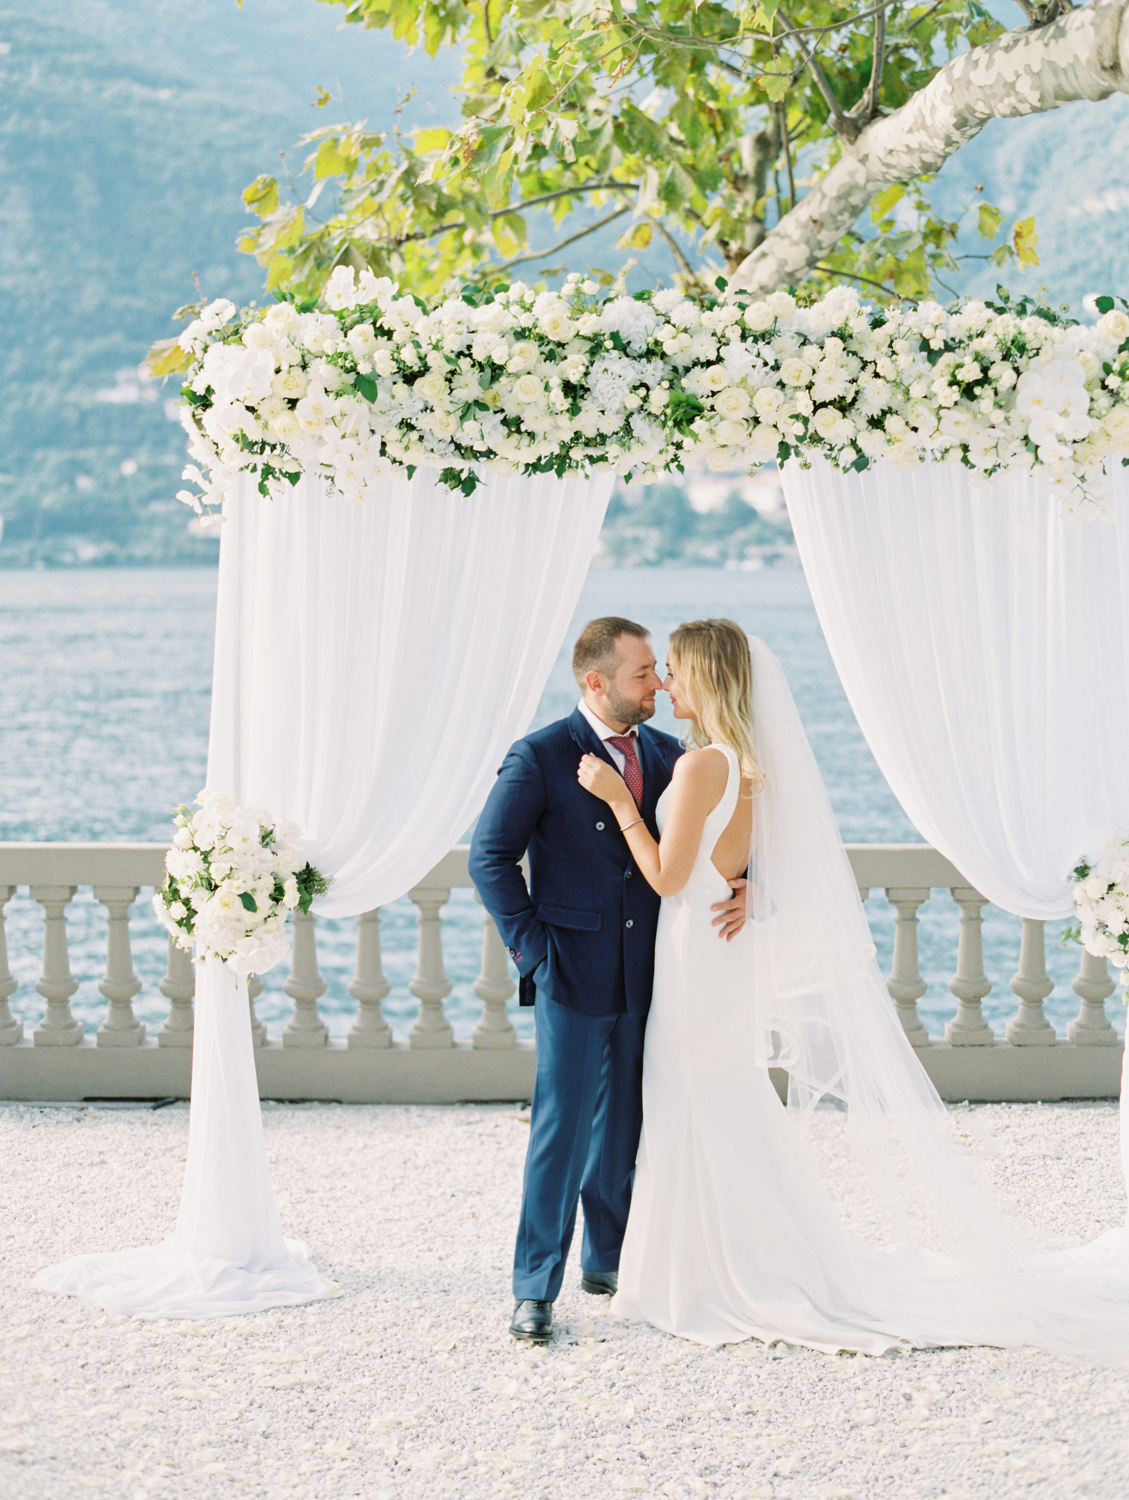 Happy couple at the wedding ceremony on lake como